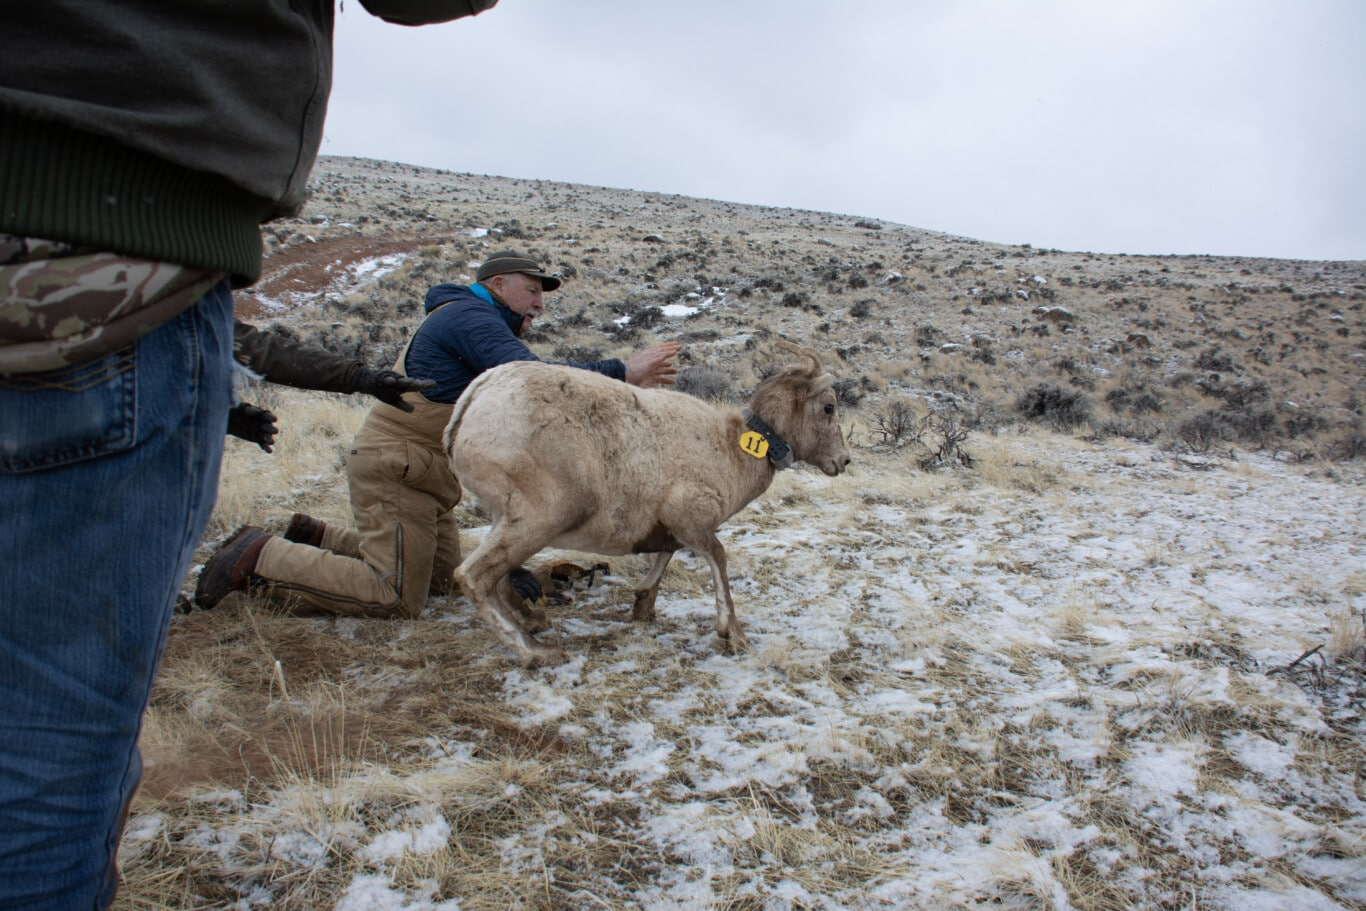 Steve Kilpatrick letting a captured and collared sheep go near Dubios